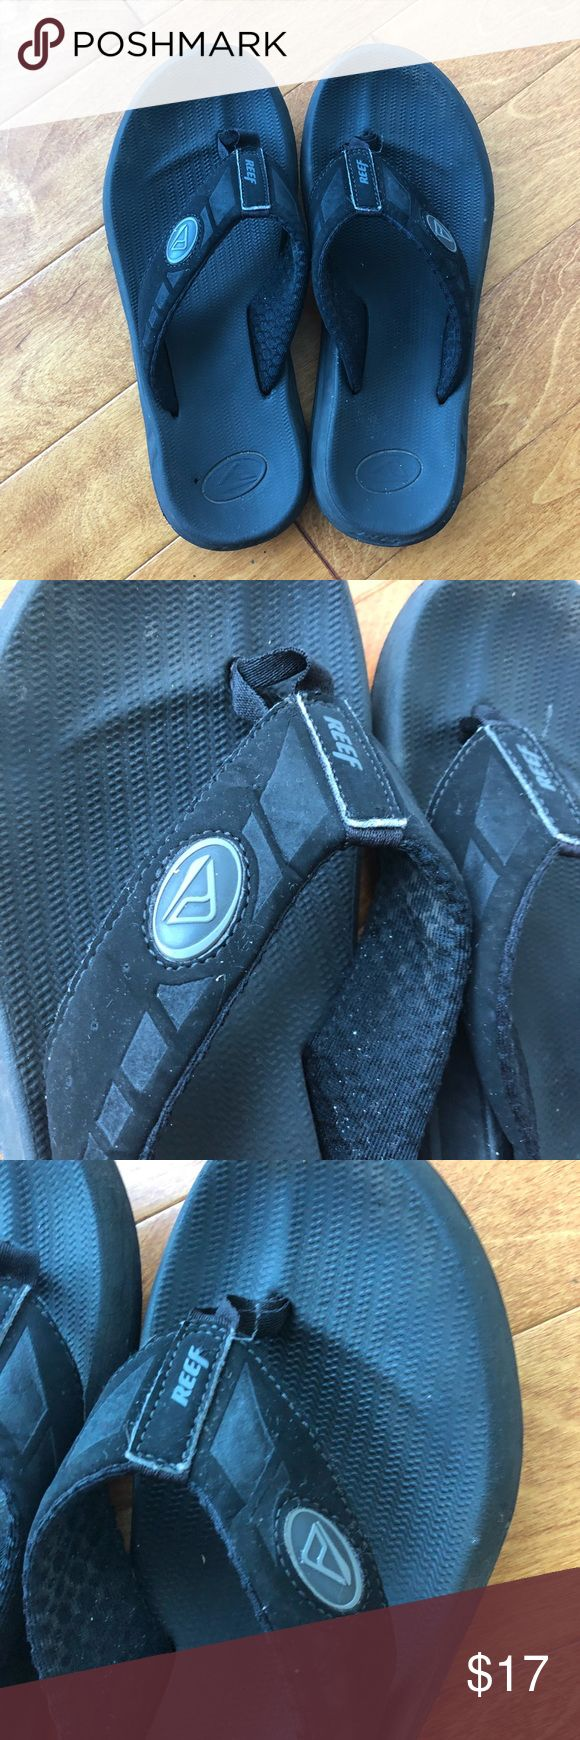 Men's reef flip flops, slippers, sandals, size 10 Gently used. As pictured. Reef Shoes Sandals & Flip-Flops